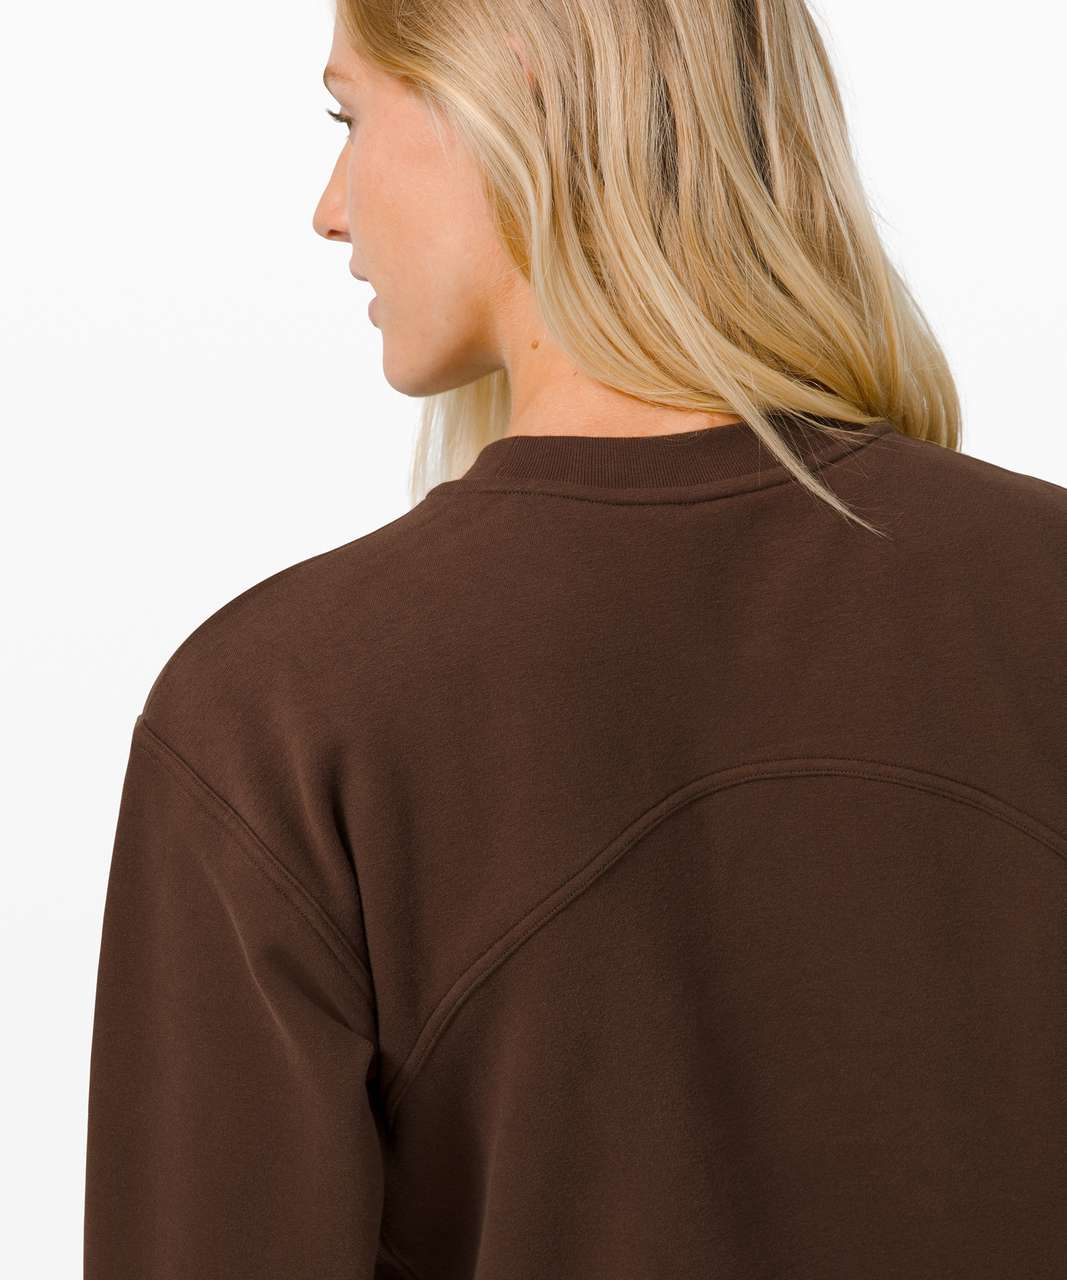 Lululemon All Yours Crew *Graphic - Brown Earth